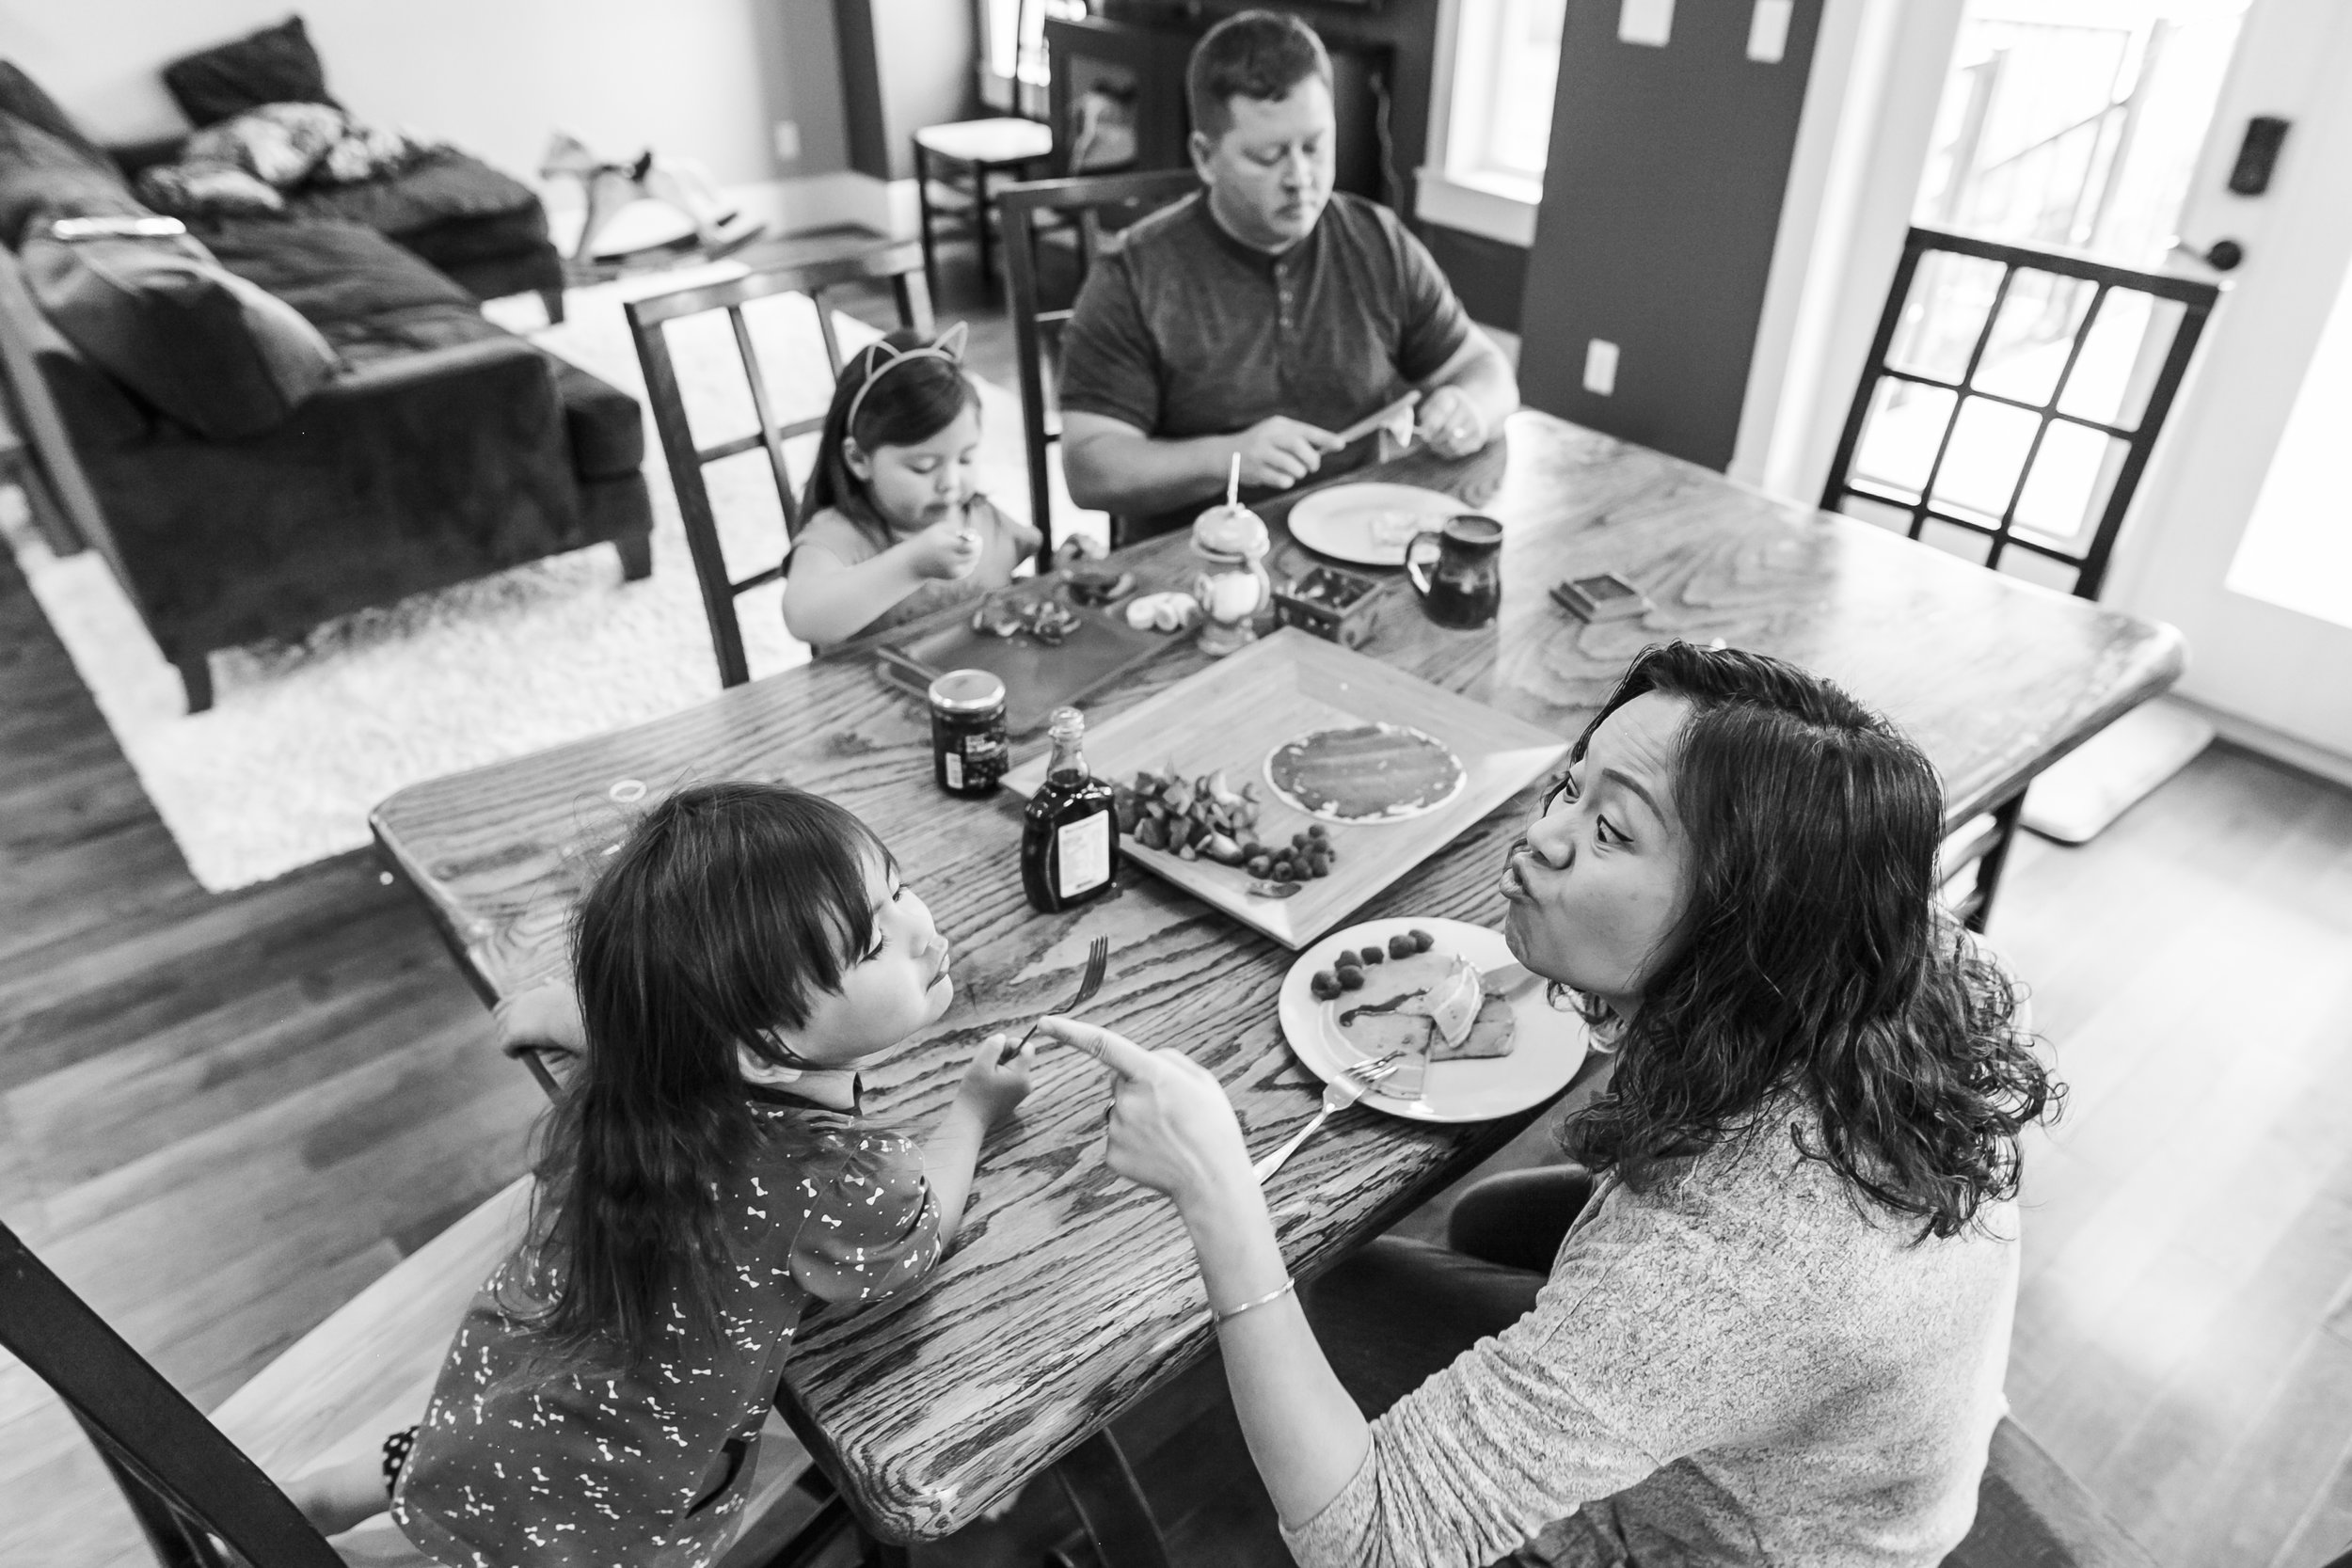 Surrey Family photographer. Vancouver family photographer, klutch Photography, documentary photography, candid photography, parents getting breakfast